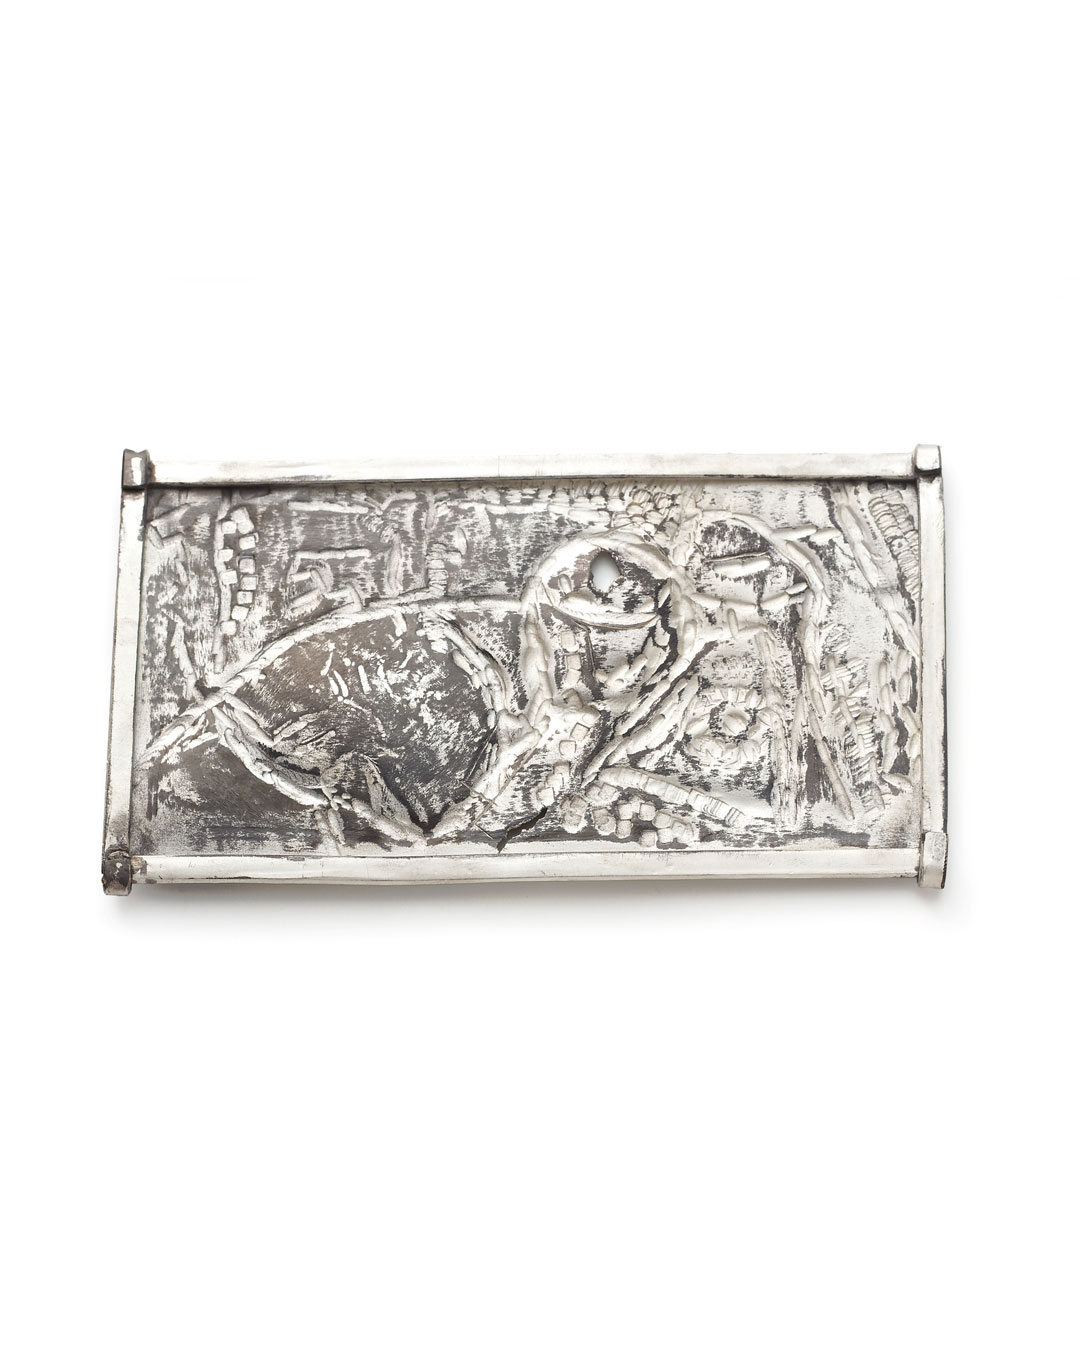 Rudolf Kocéa, Andreasfest (St. Andrew's Day), 2014, brooch; silver, copper, 60 x 115 x 8 mm, €1550